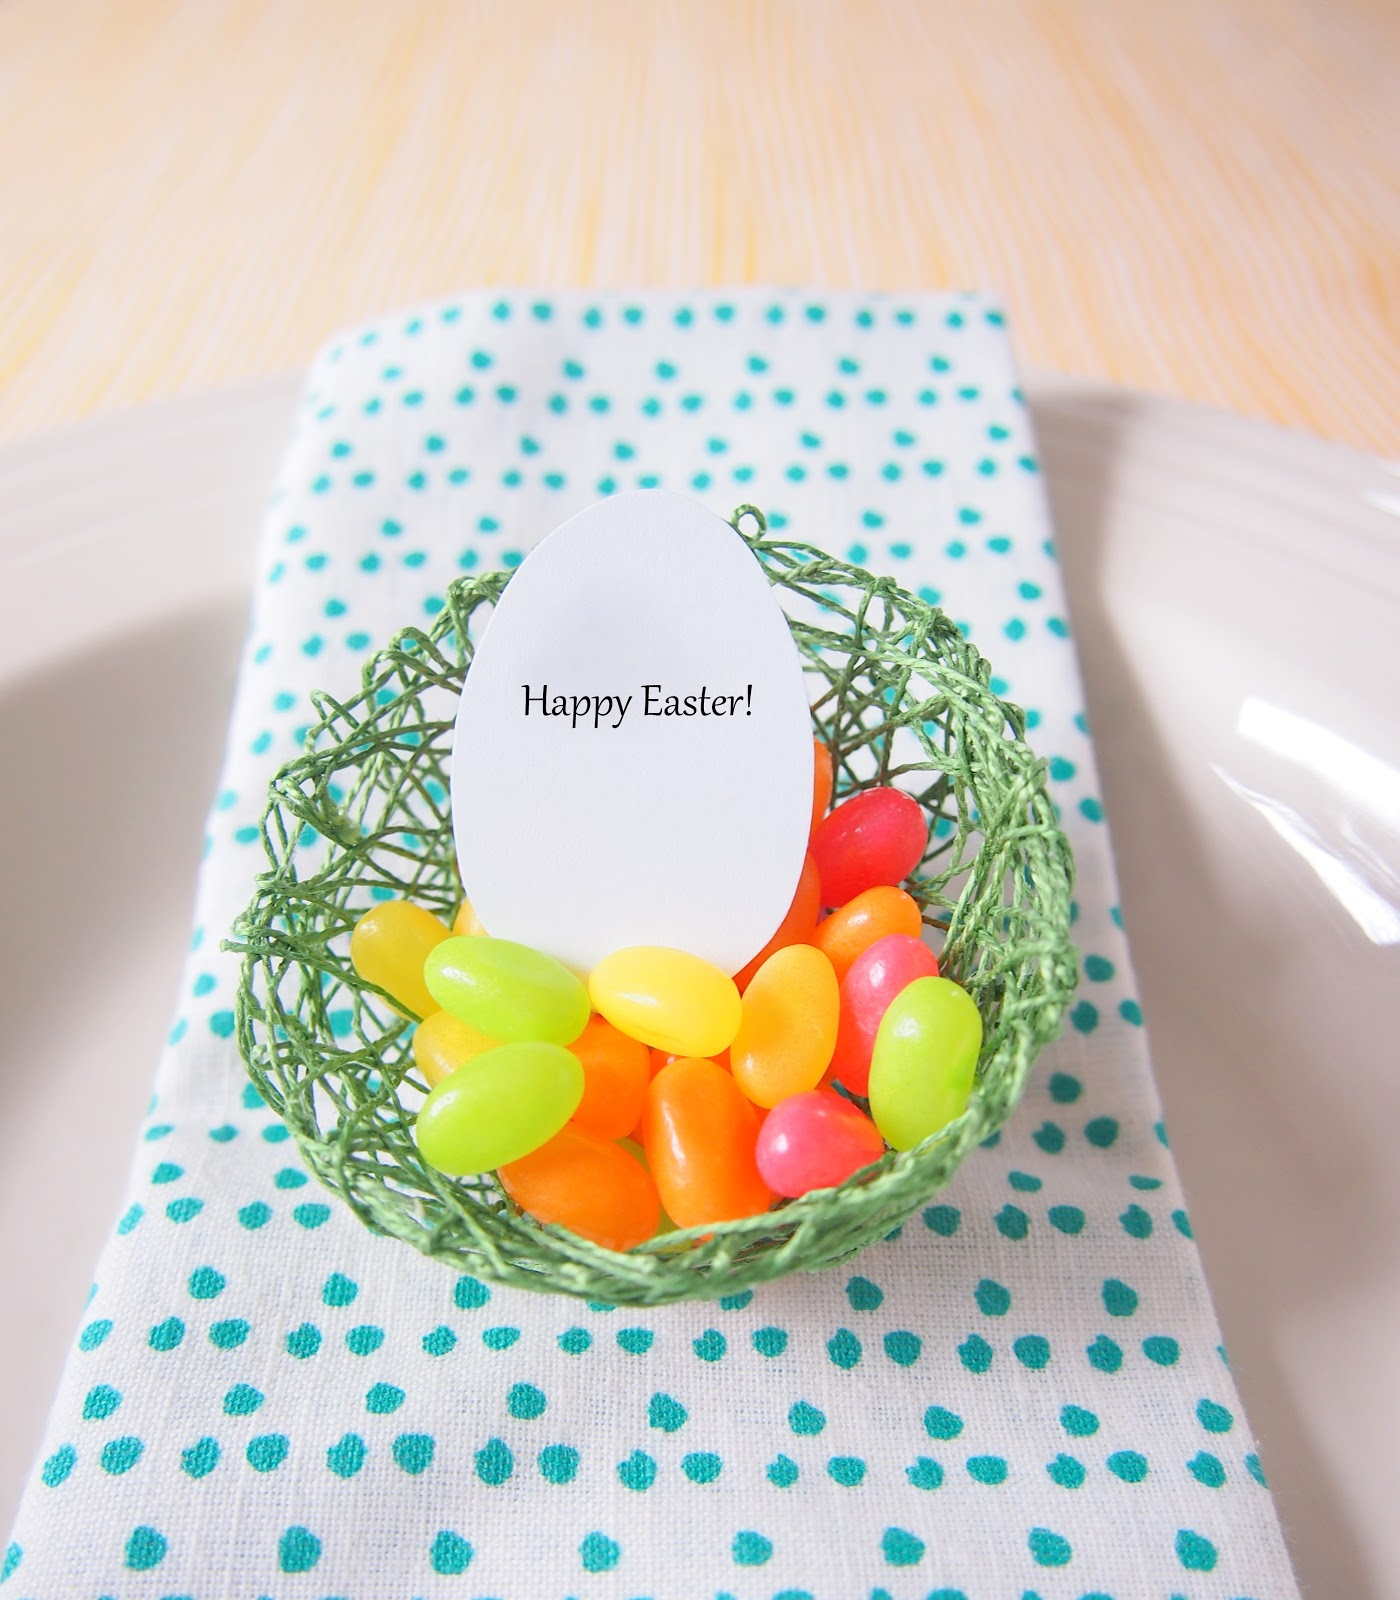 DIY string egg nests with candies